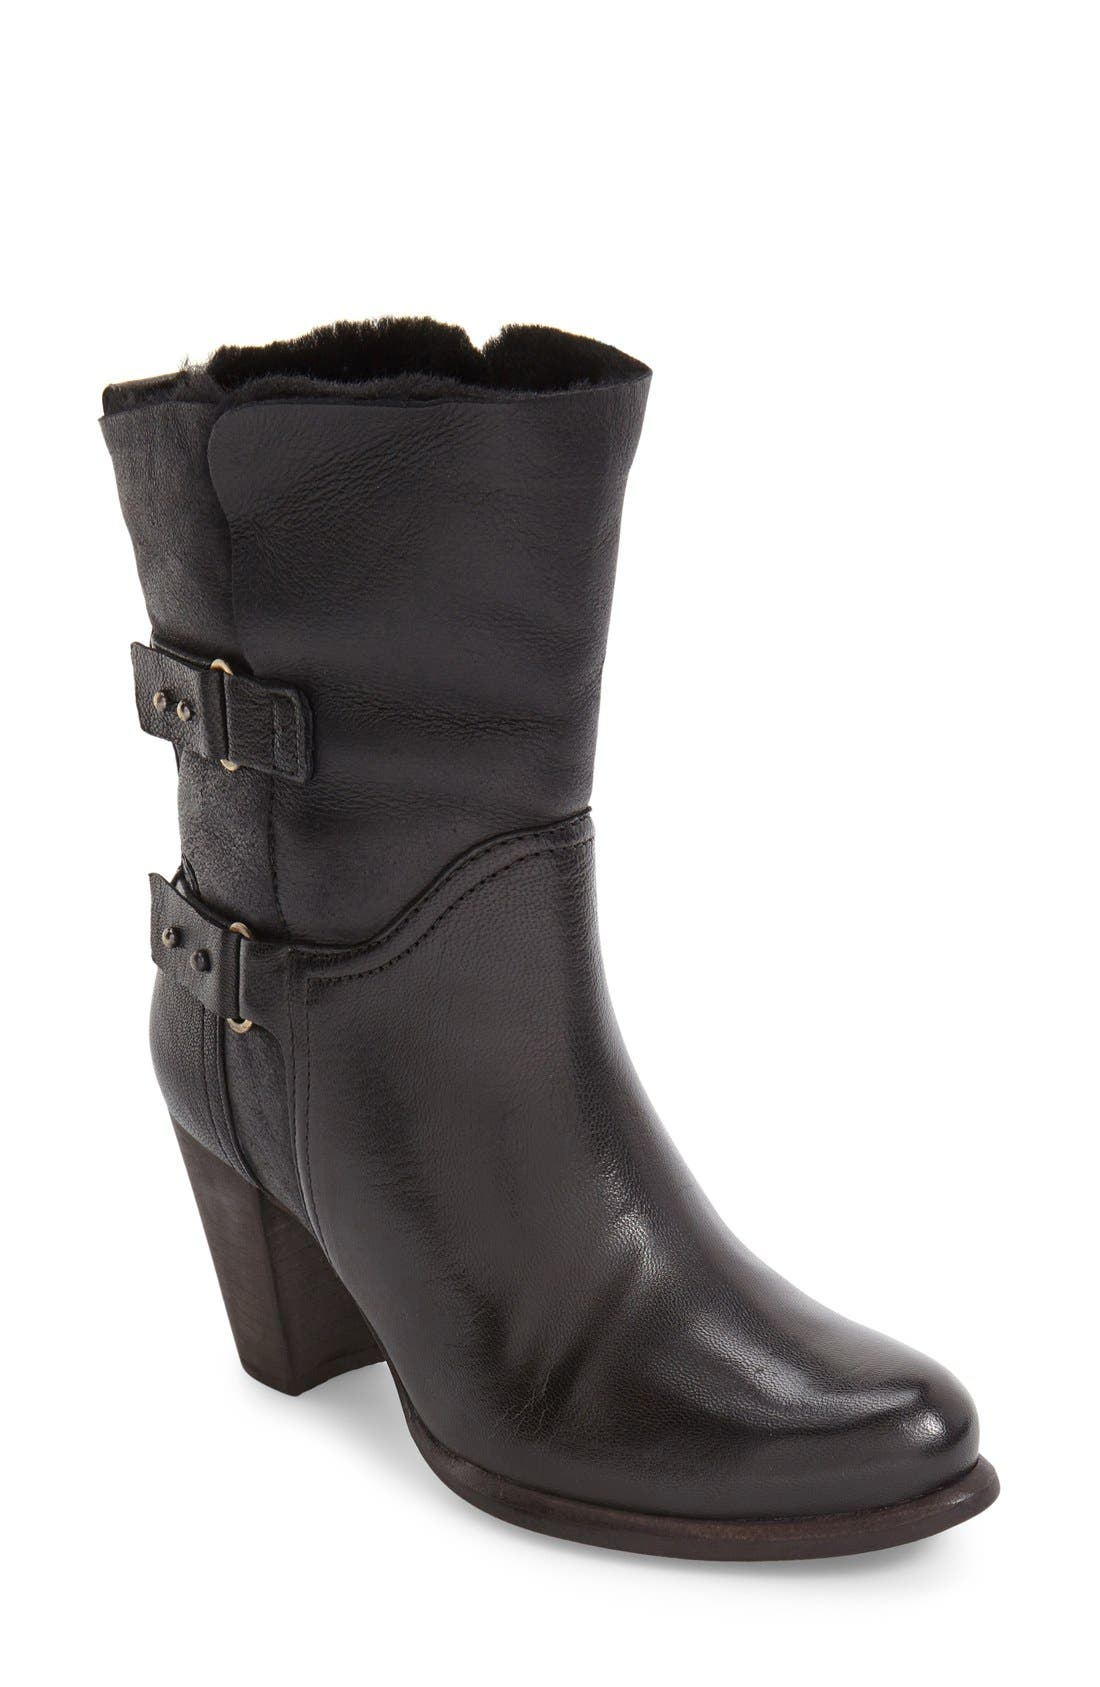 Alternate Image 1 Selected - UGG® Jayne Cuffable Bootie (Women)